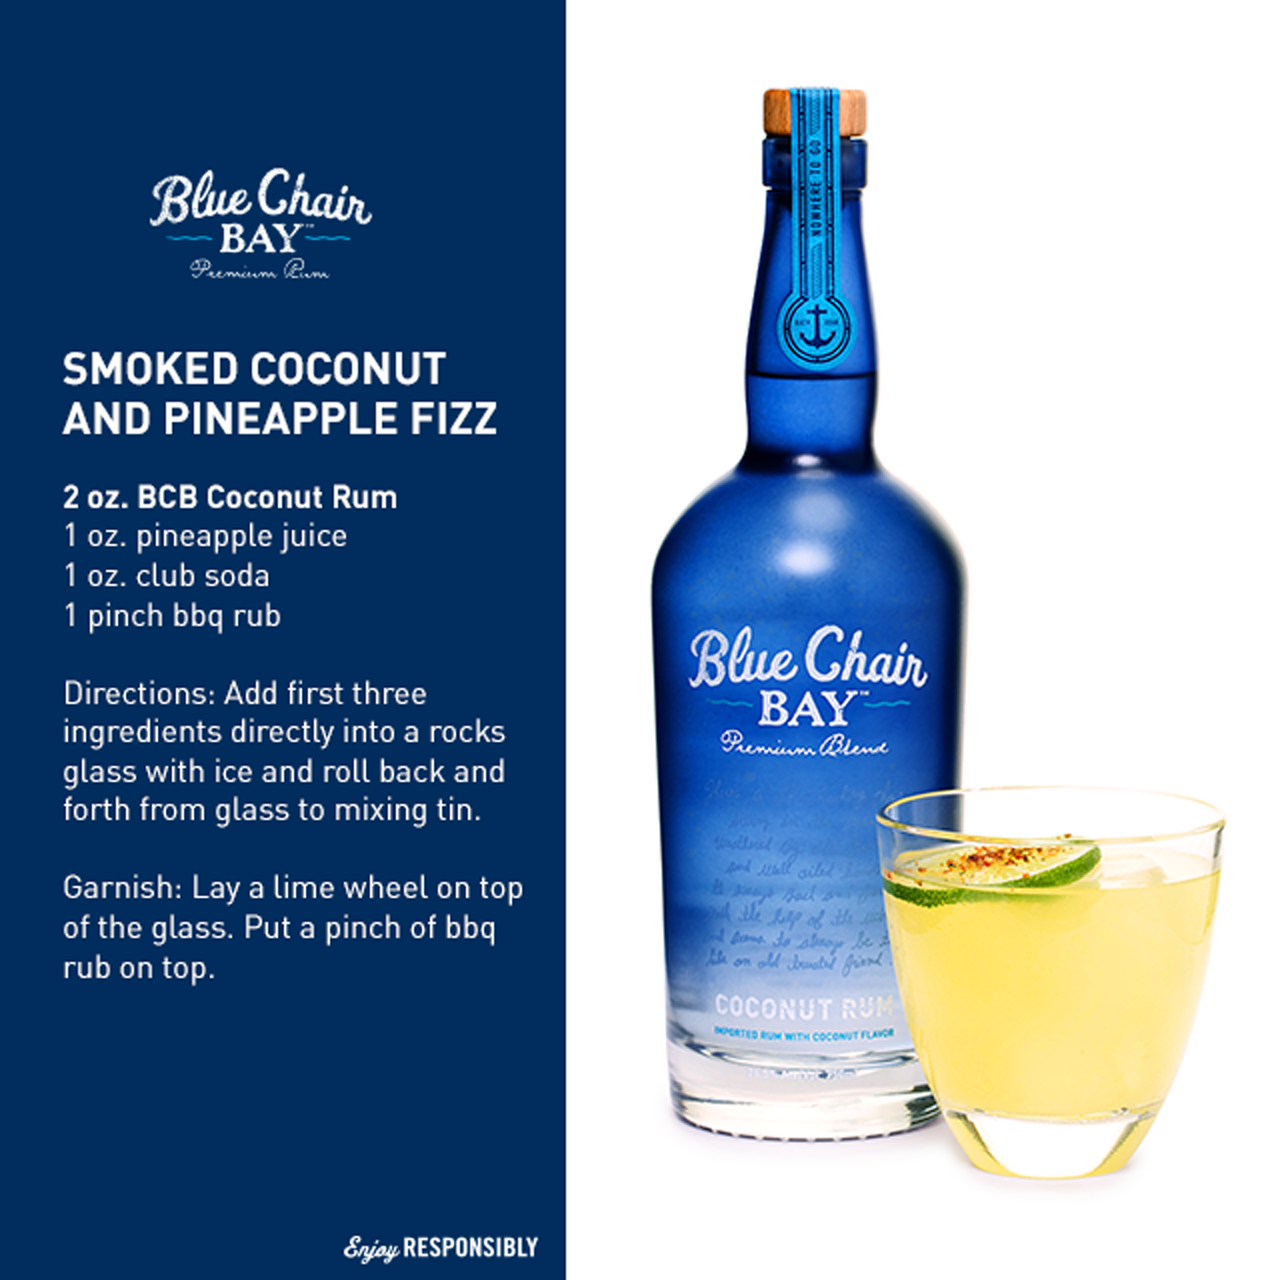 Here's A Sunday Sipper: Coconut Rum + Pineapple Juice